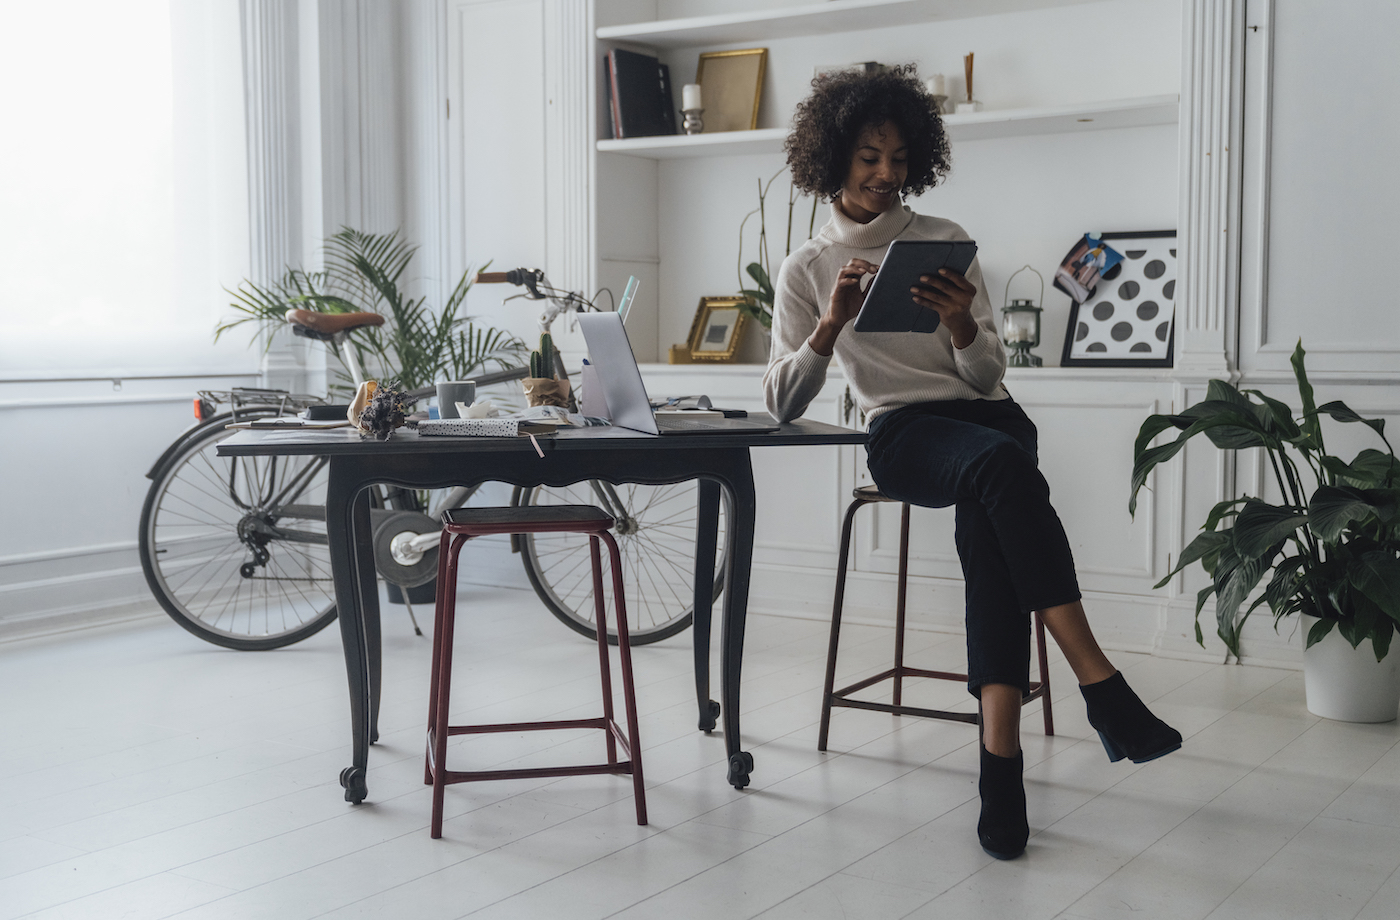 Thumbnail for 8 Home Office Desk Ideas That Will Make Your WFH Space an Inspiring Oasis